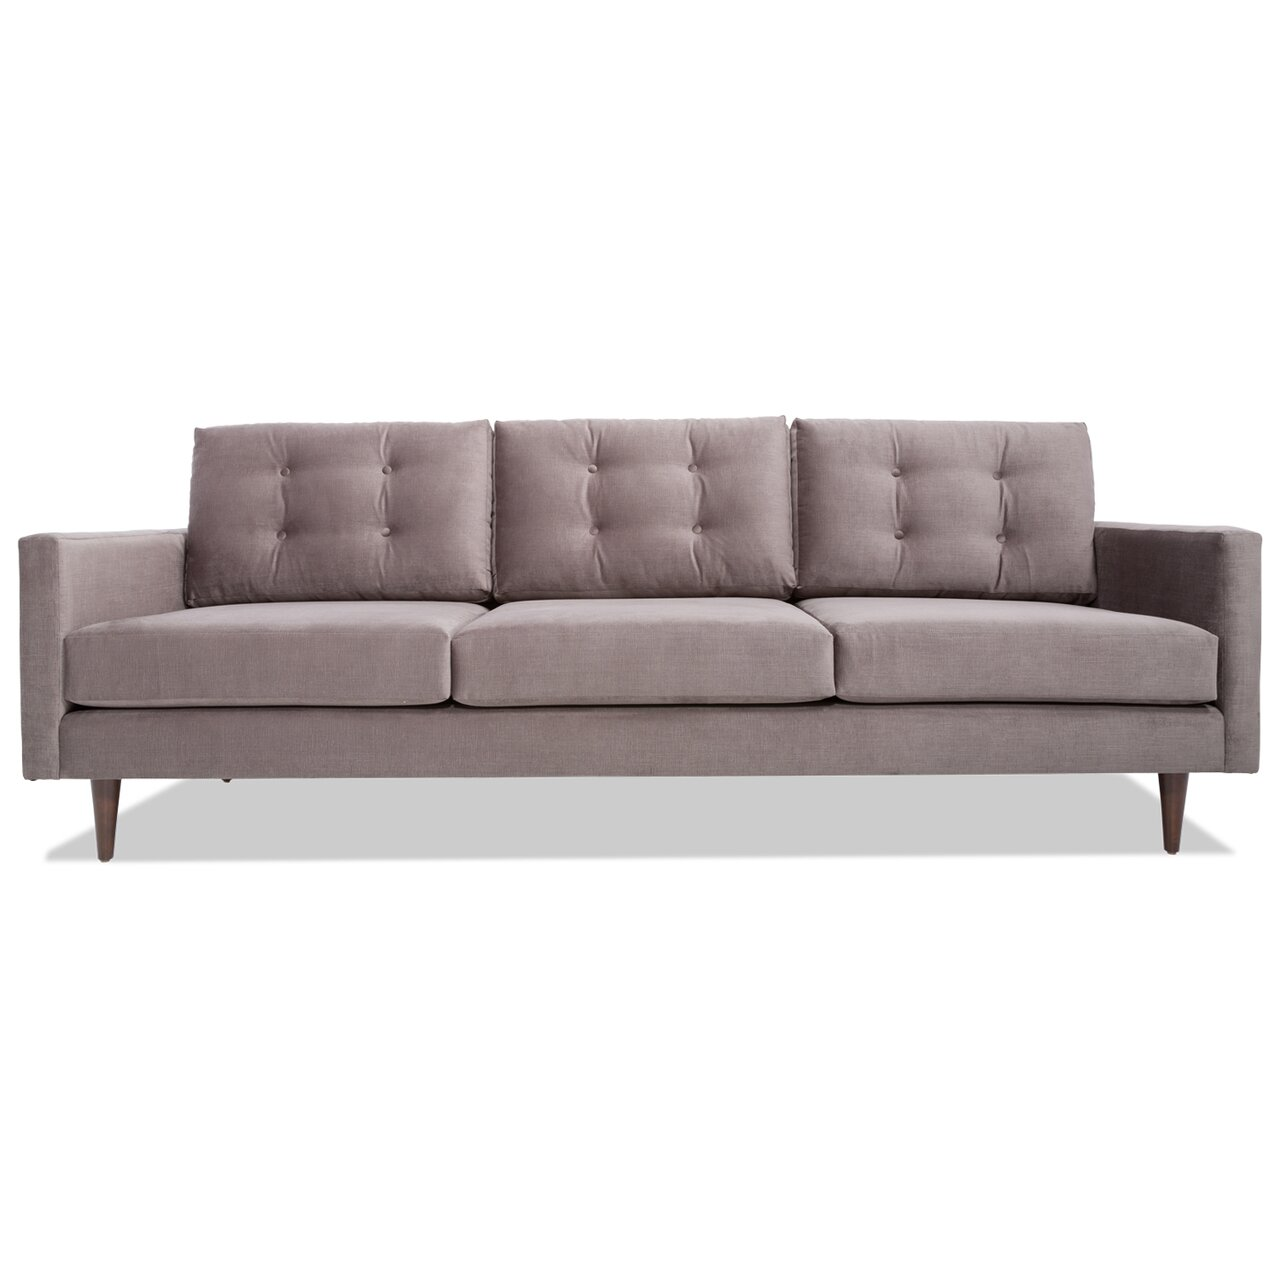 danish modern sleeper sofa danish mid century modern back sleeper sofa at 1stdibs thesofa. Black Bedroom Furniture Sets. Home Design Ideas